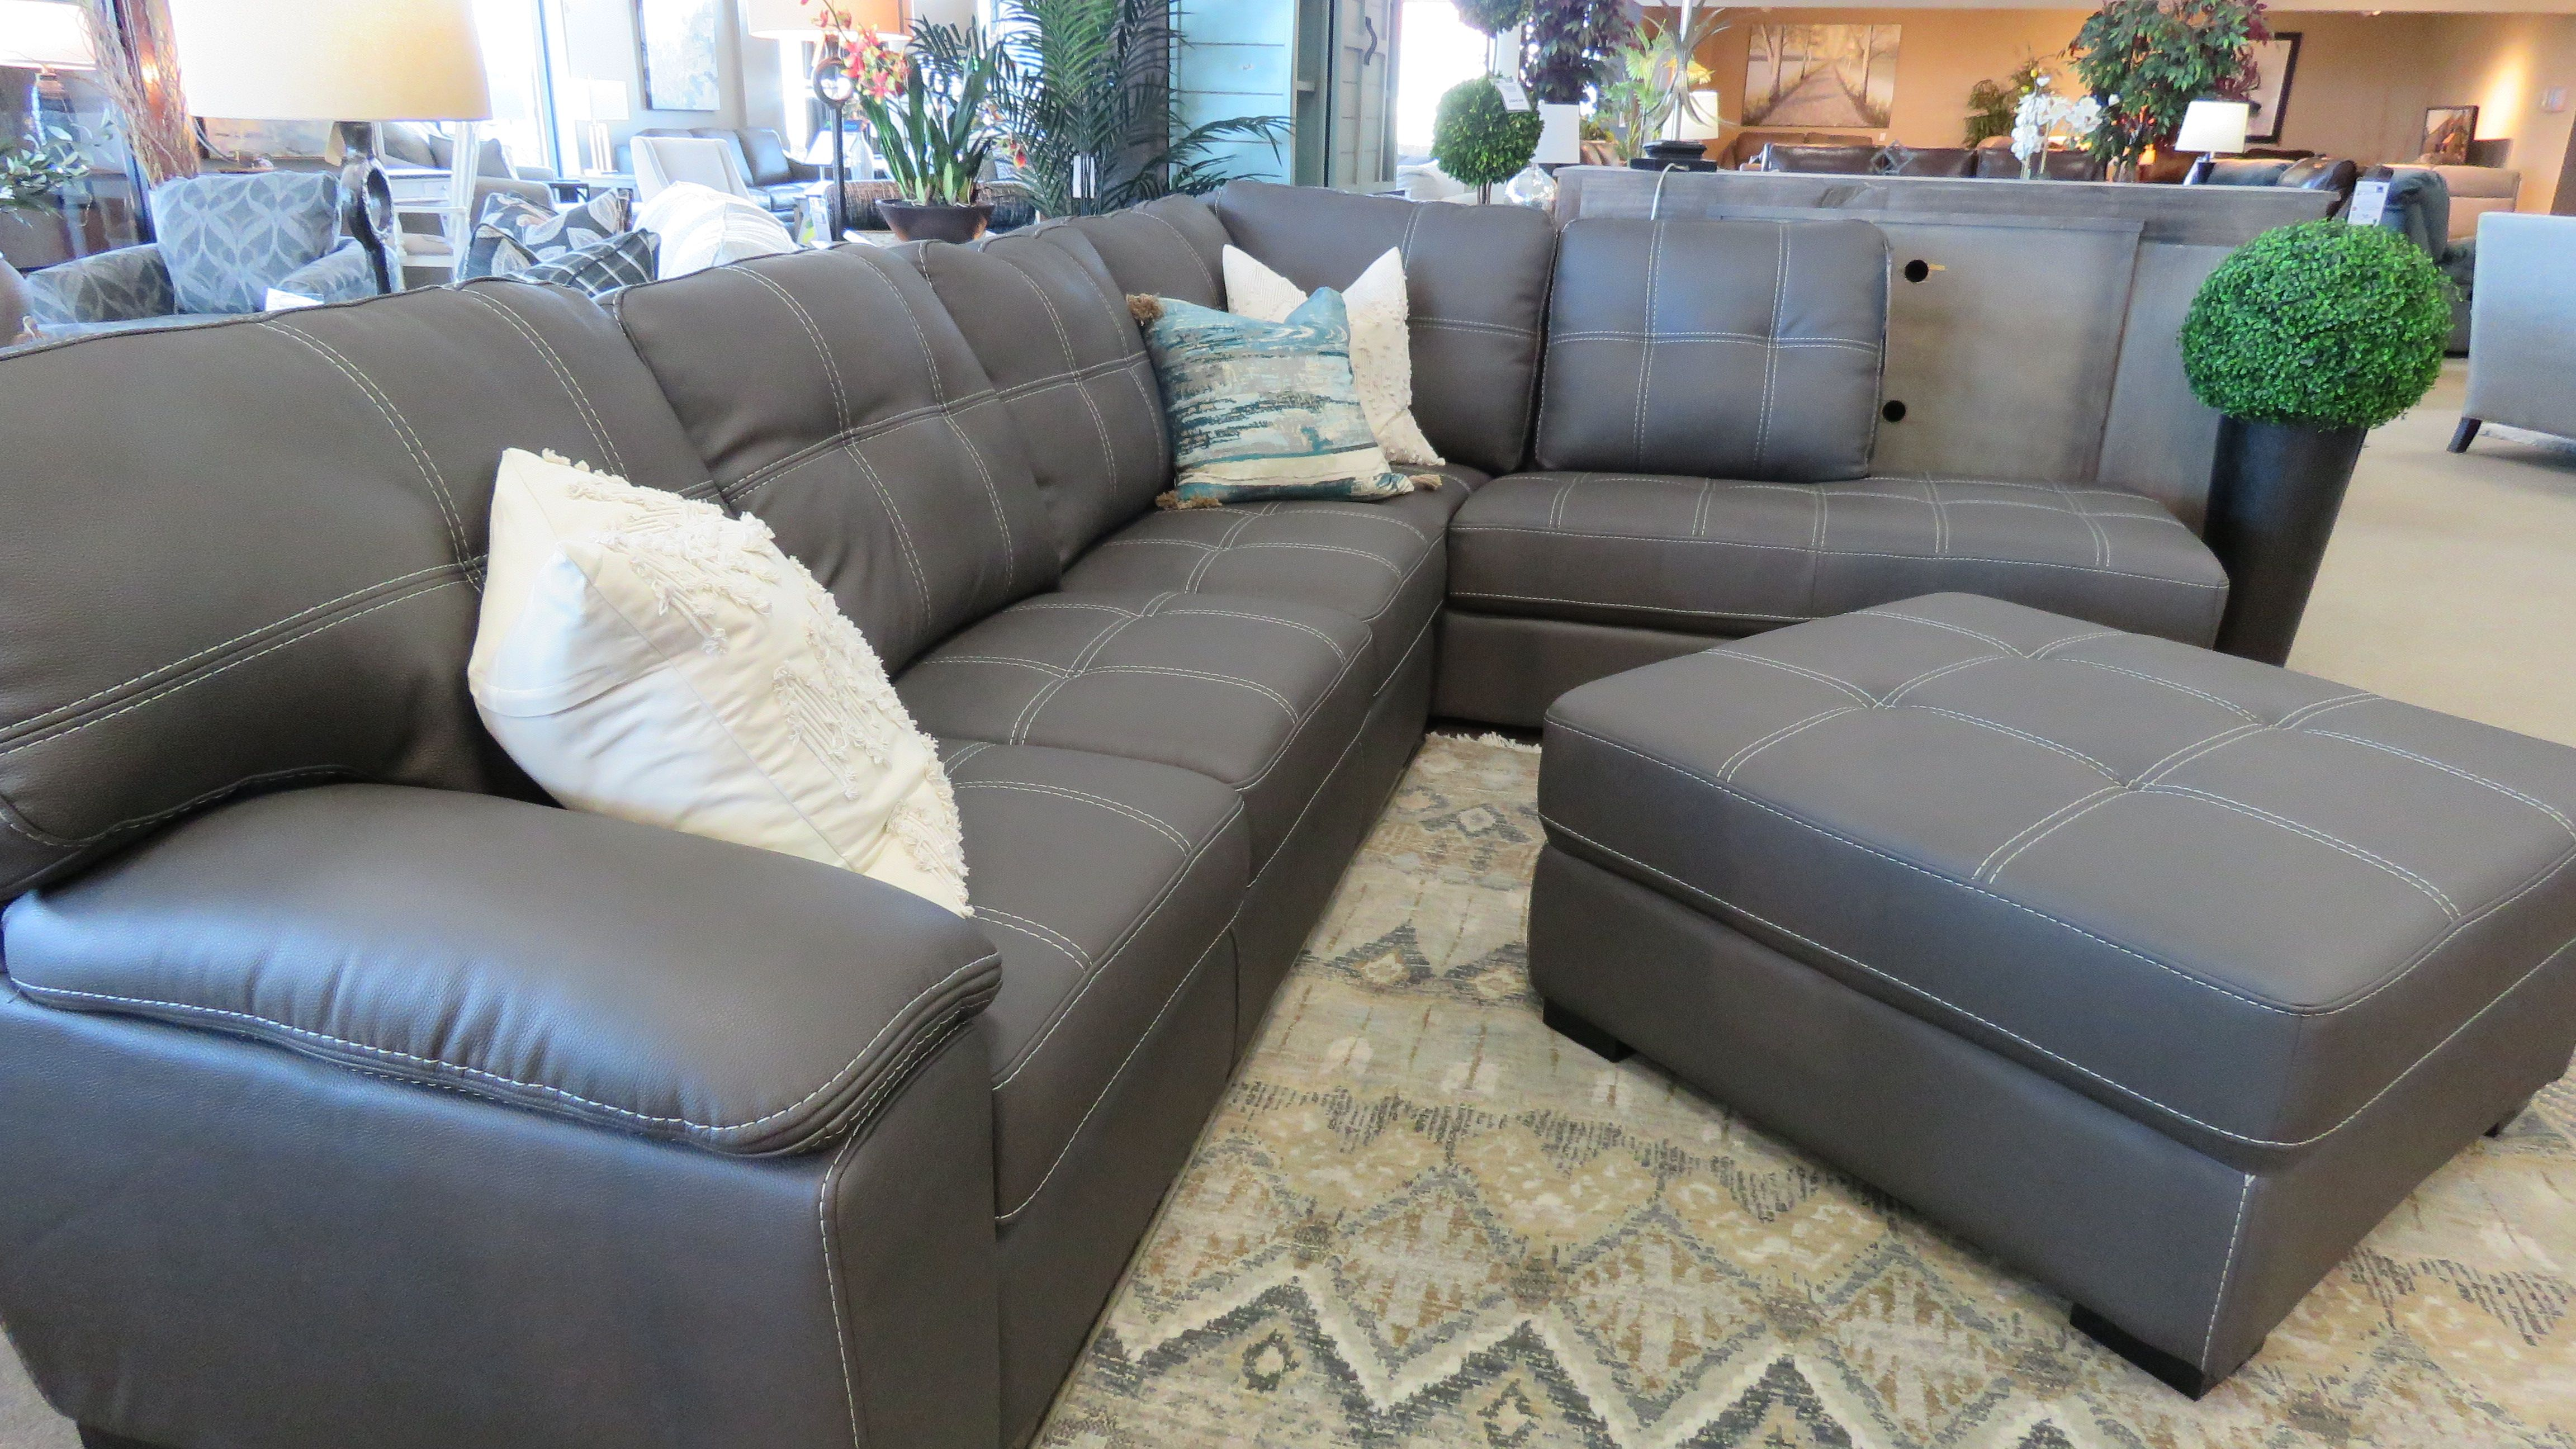 Sectional Couch With White Stitching Ottoman Furniture Sectional Couch Craftmaster Furniture